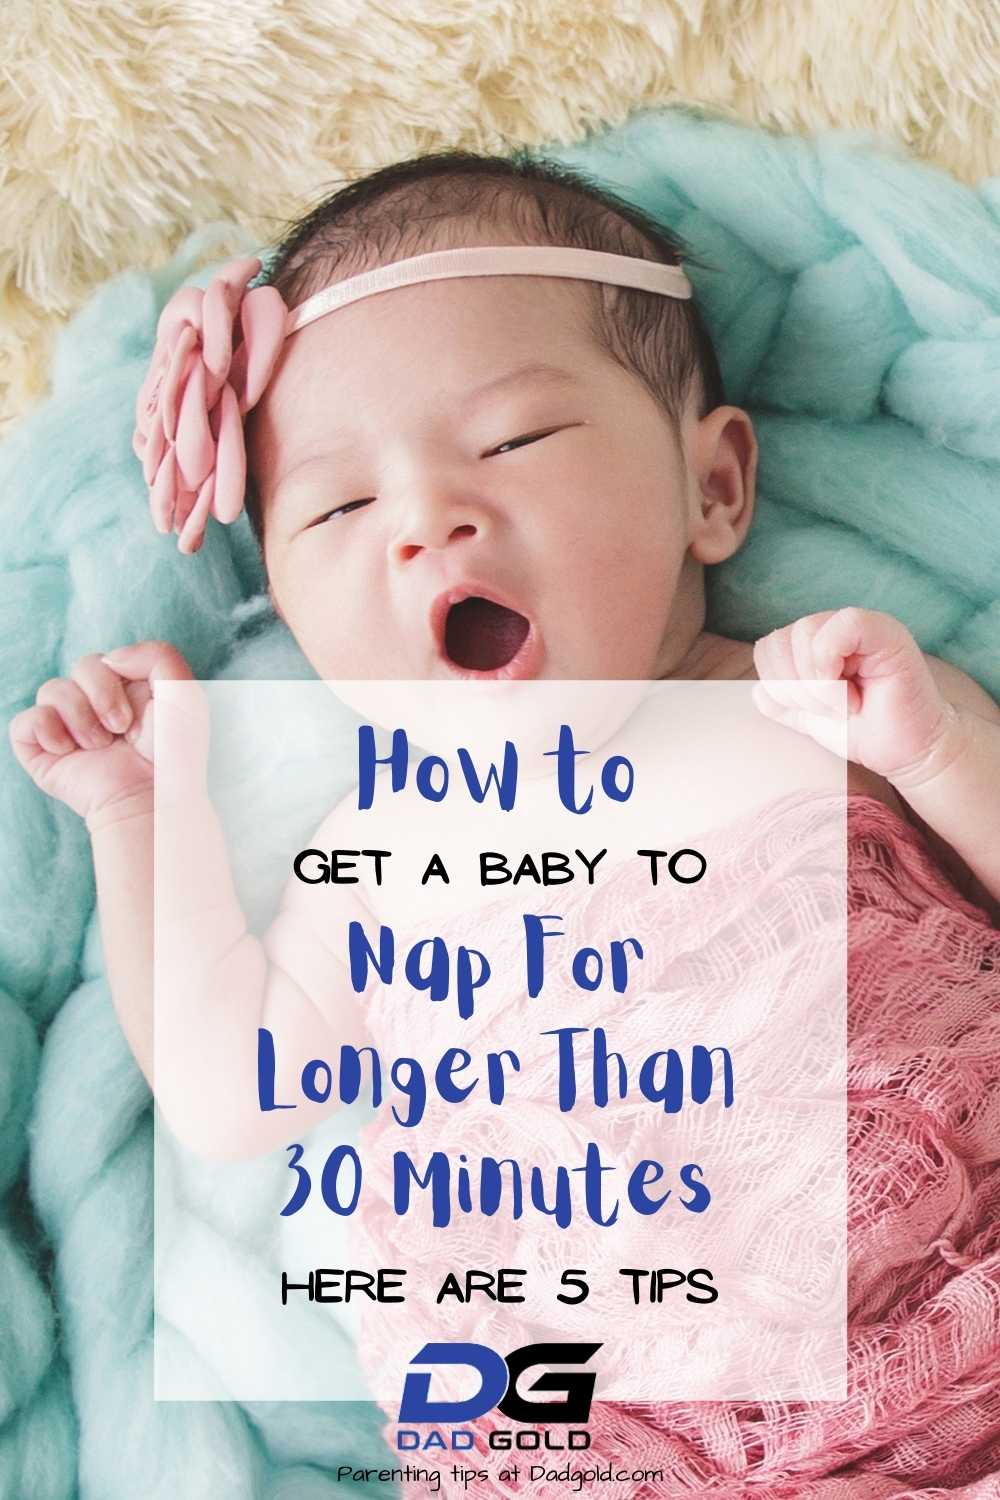 How to get a baby to nap for longer than 30 minutes